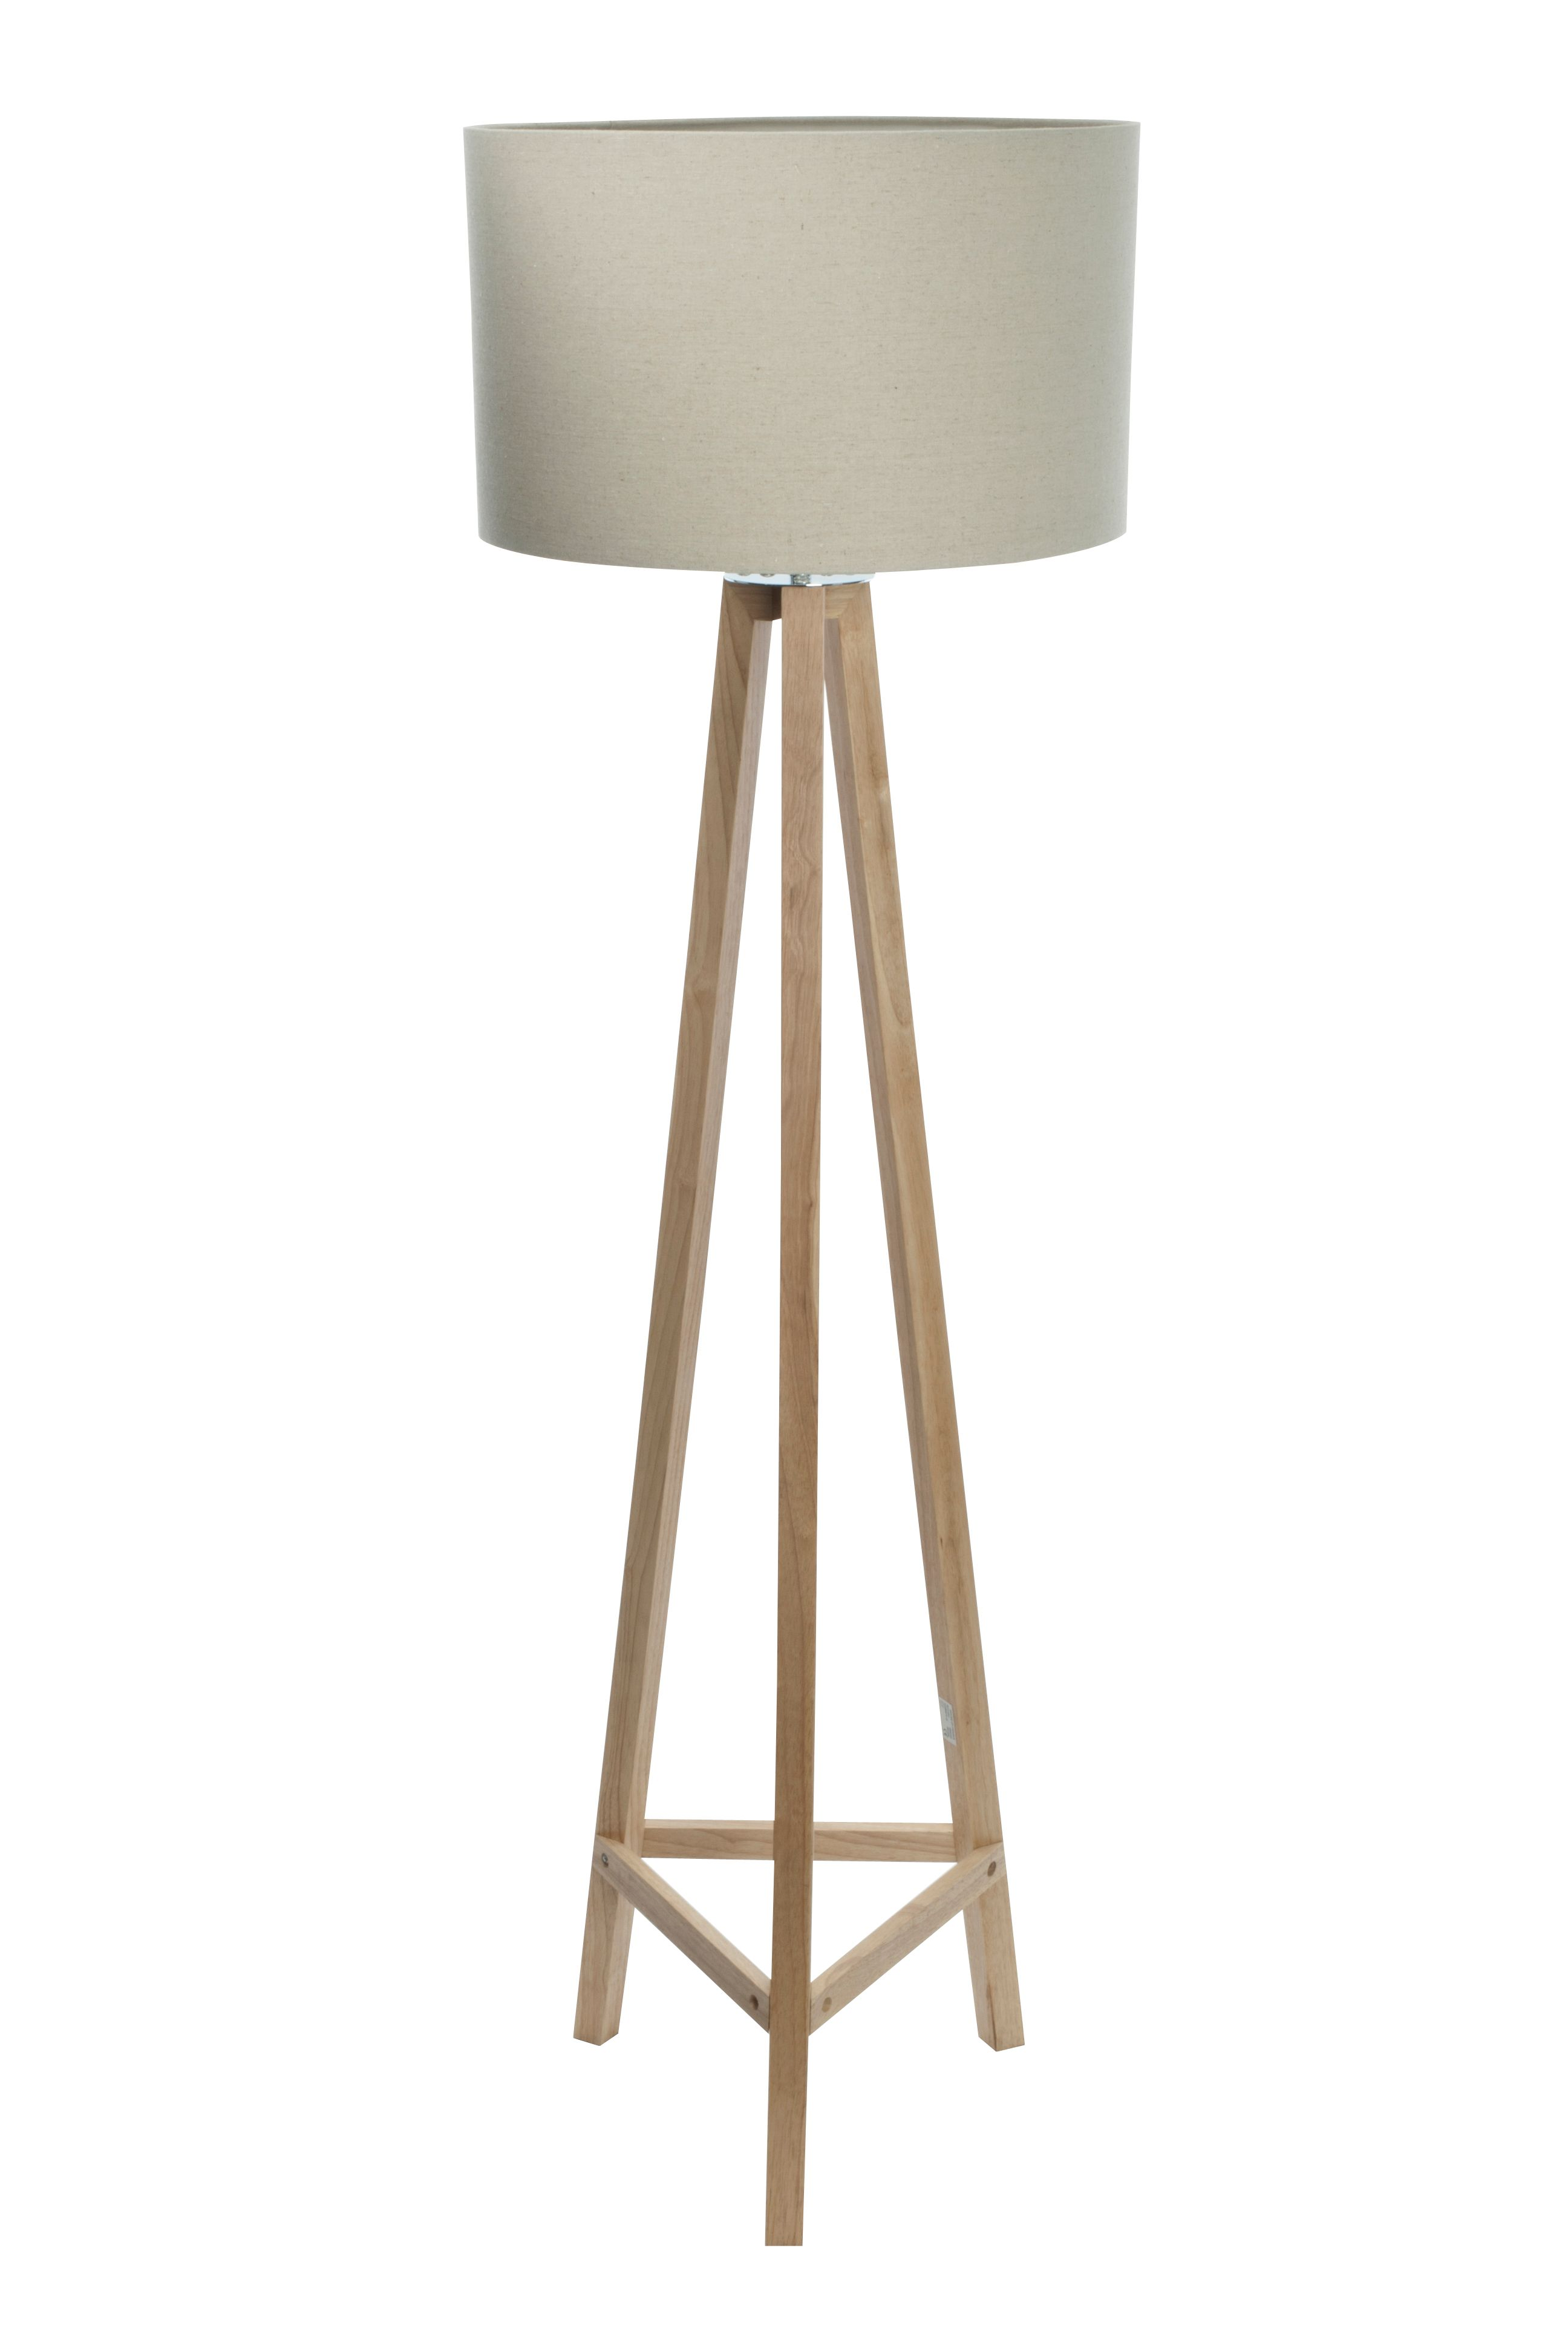 Linea connie light wood tripod floor lamp house of fraser mozeypictures Gallery